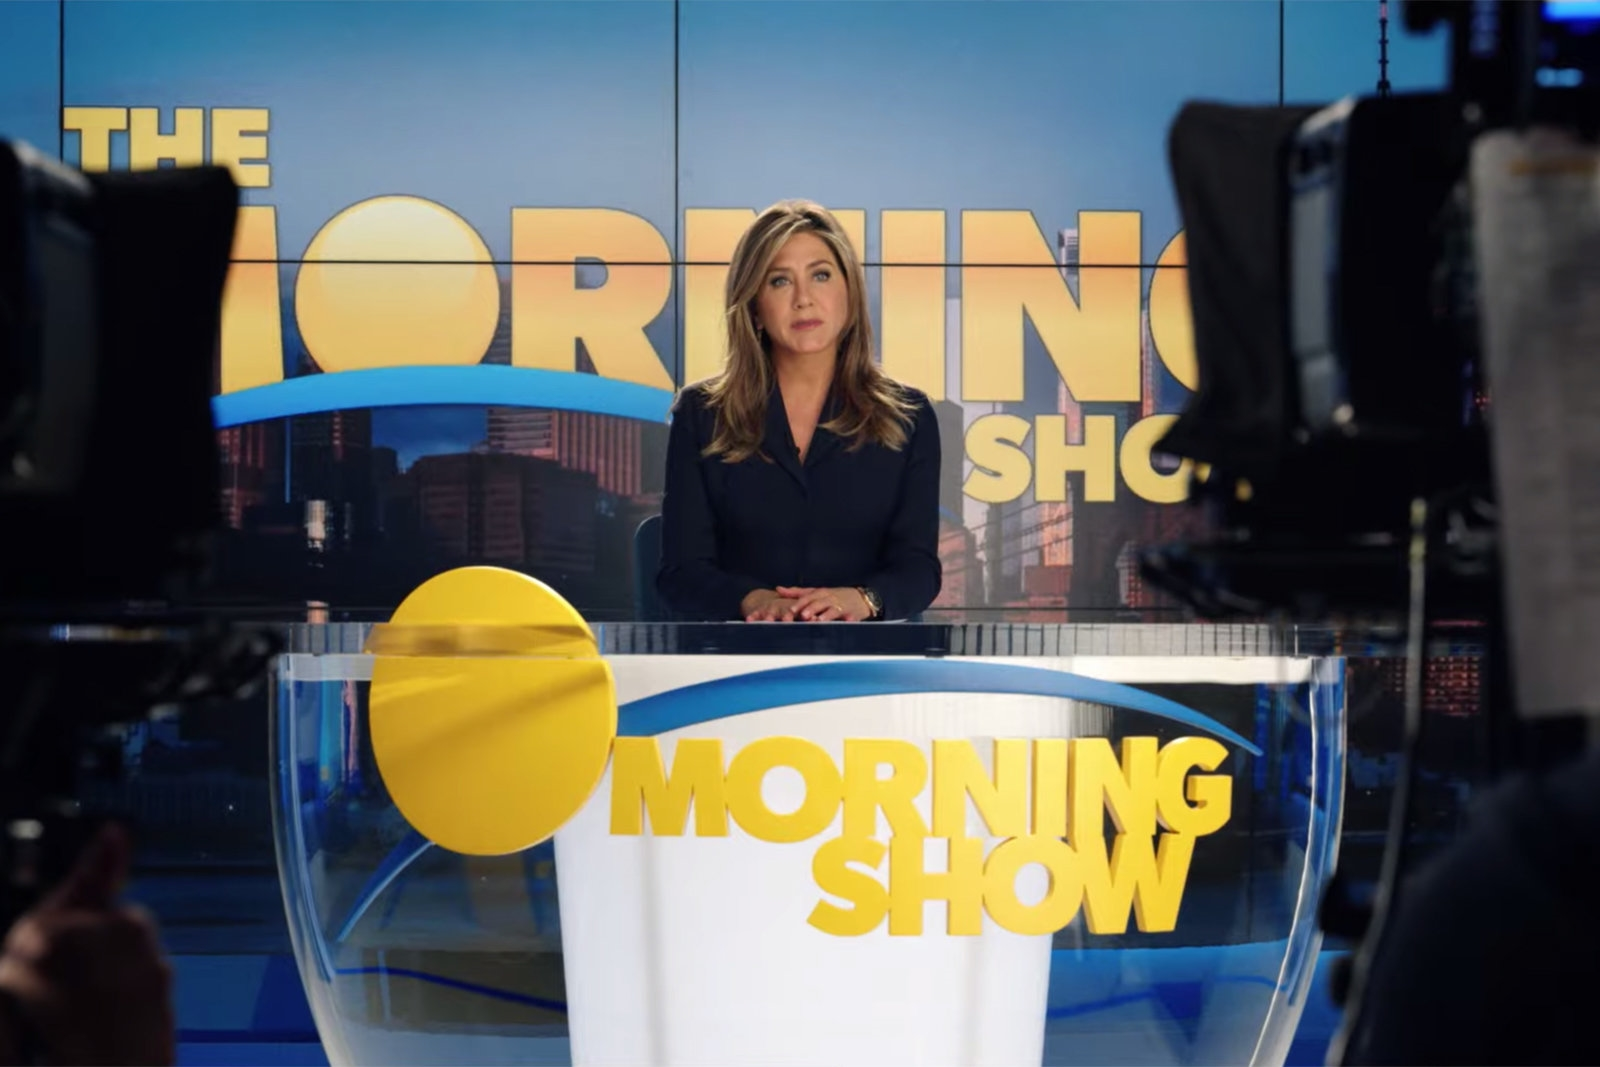 Apple finally releases a trailer for 'The Morning Show' | DeviceDaily.com